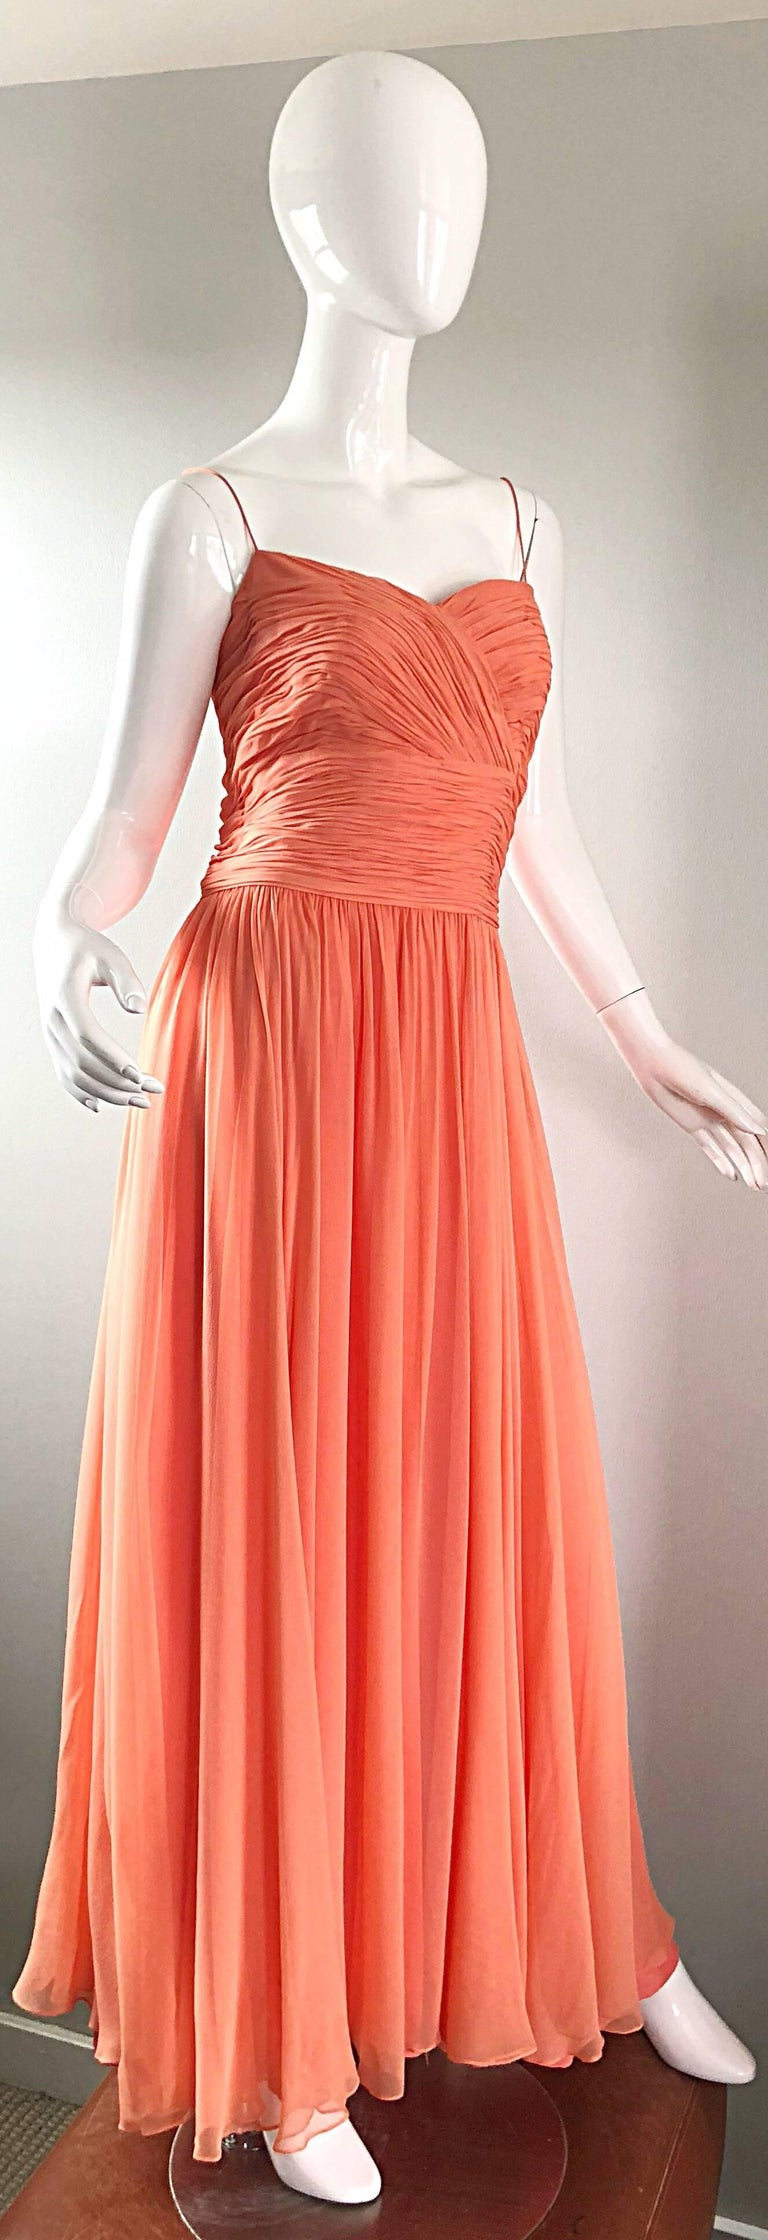 Gorgeous 1950s Saks 5th Ave. Salmon / Coral Pink Silk Chiffon Vintage 50s Gown In Excellent Condition For Sale In Chicago, IL